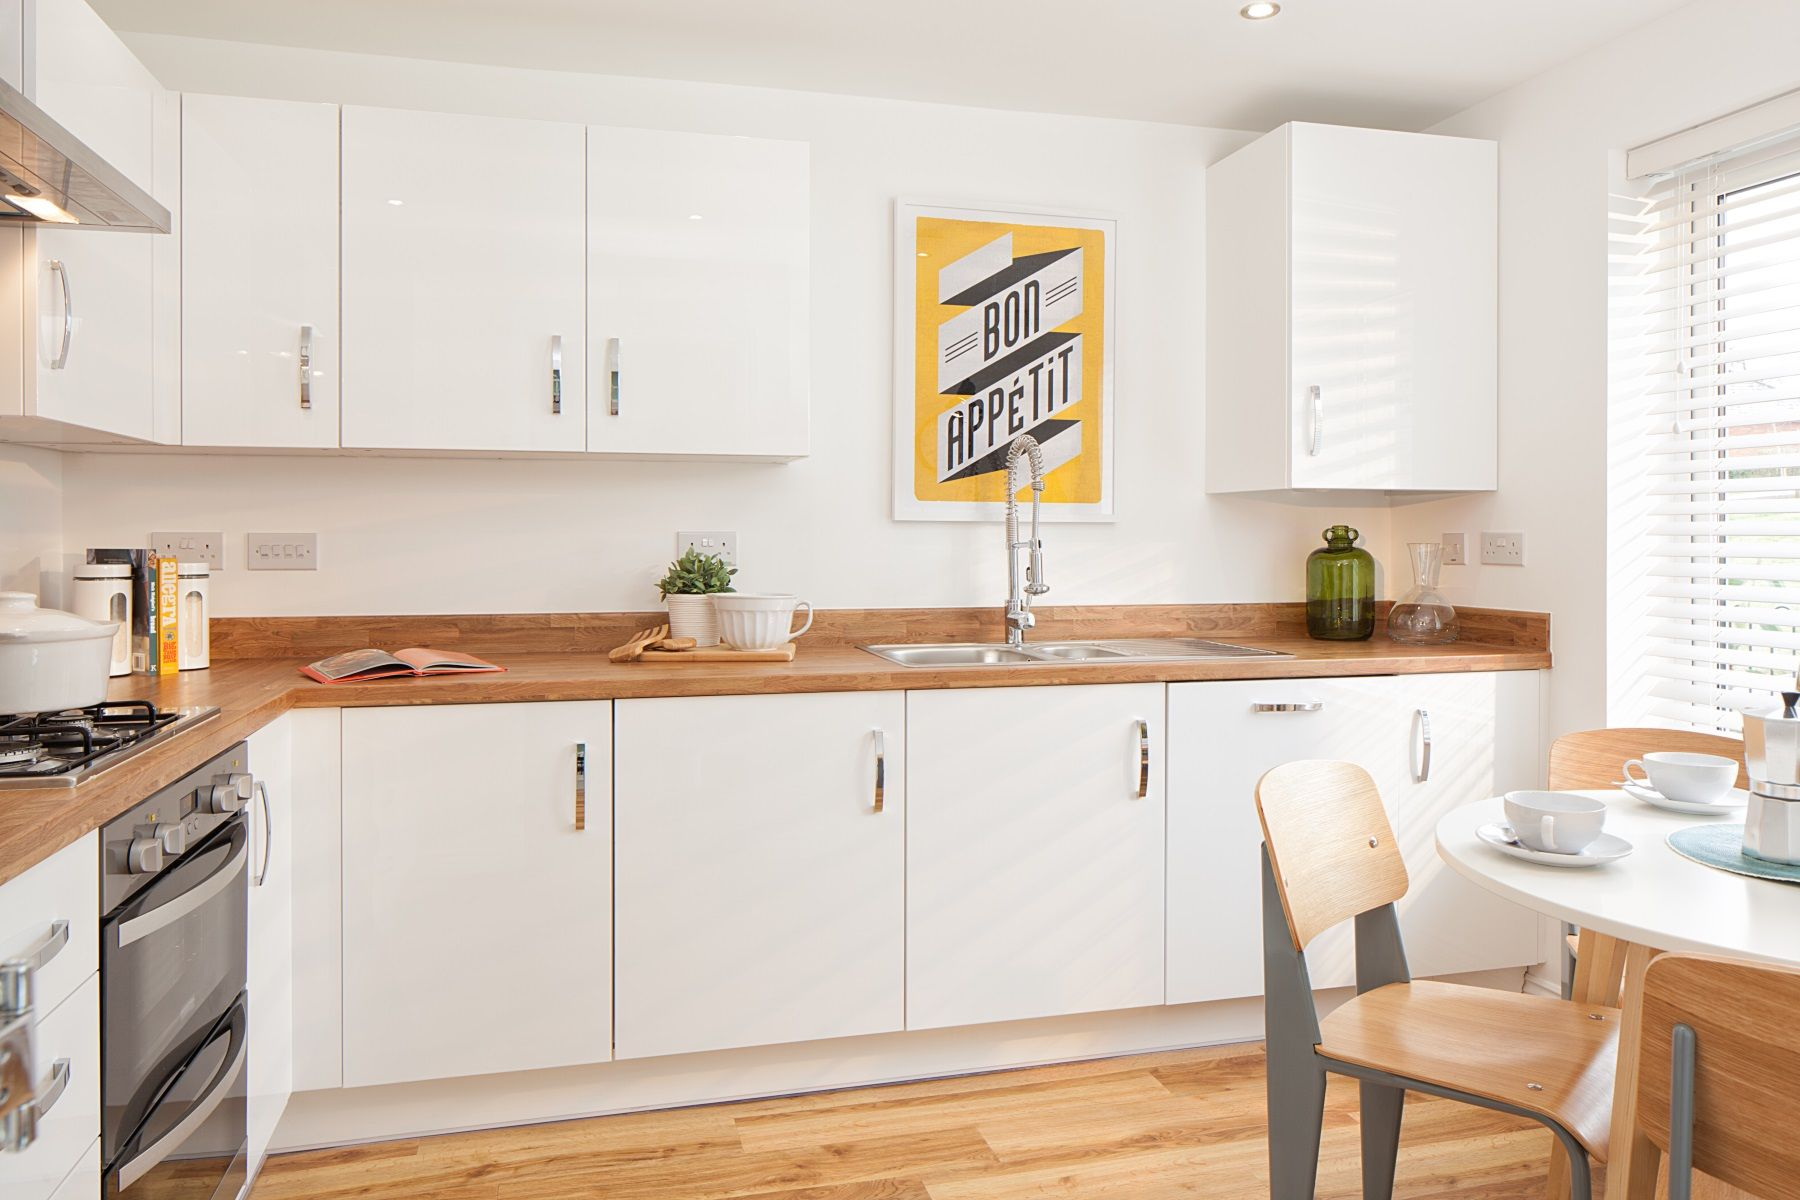 TW Exeter - Plumb Park - Seaton example kitchen 2